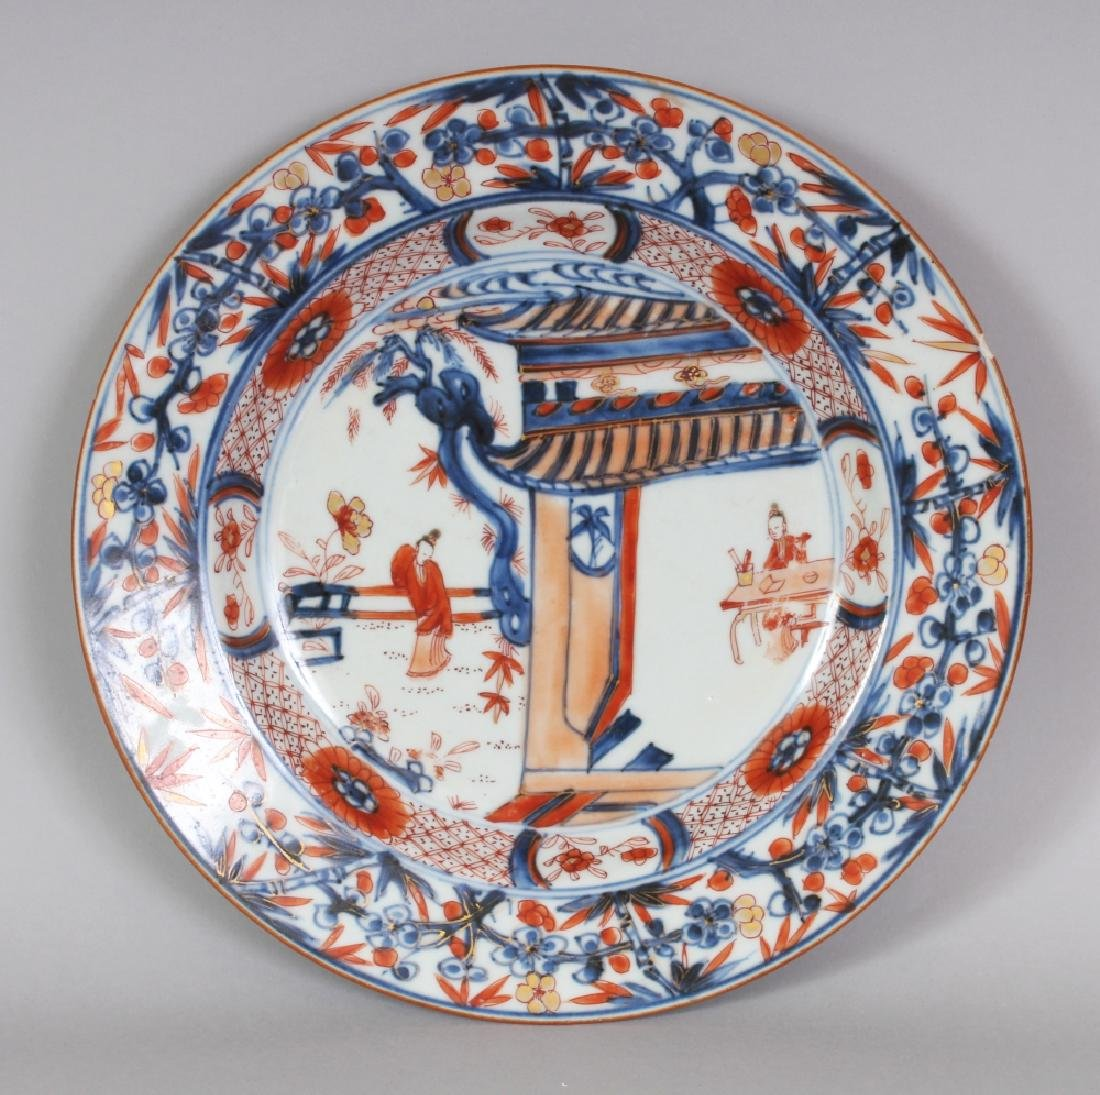 AN EARLY 18TH CENTURY CHINESE IMARI TERRACE SCENE